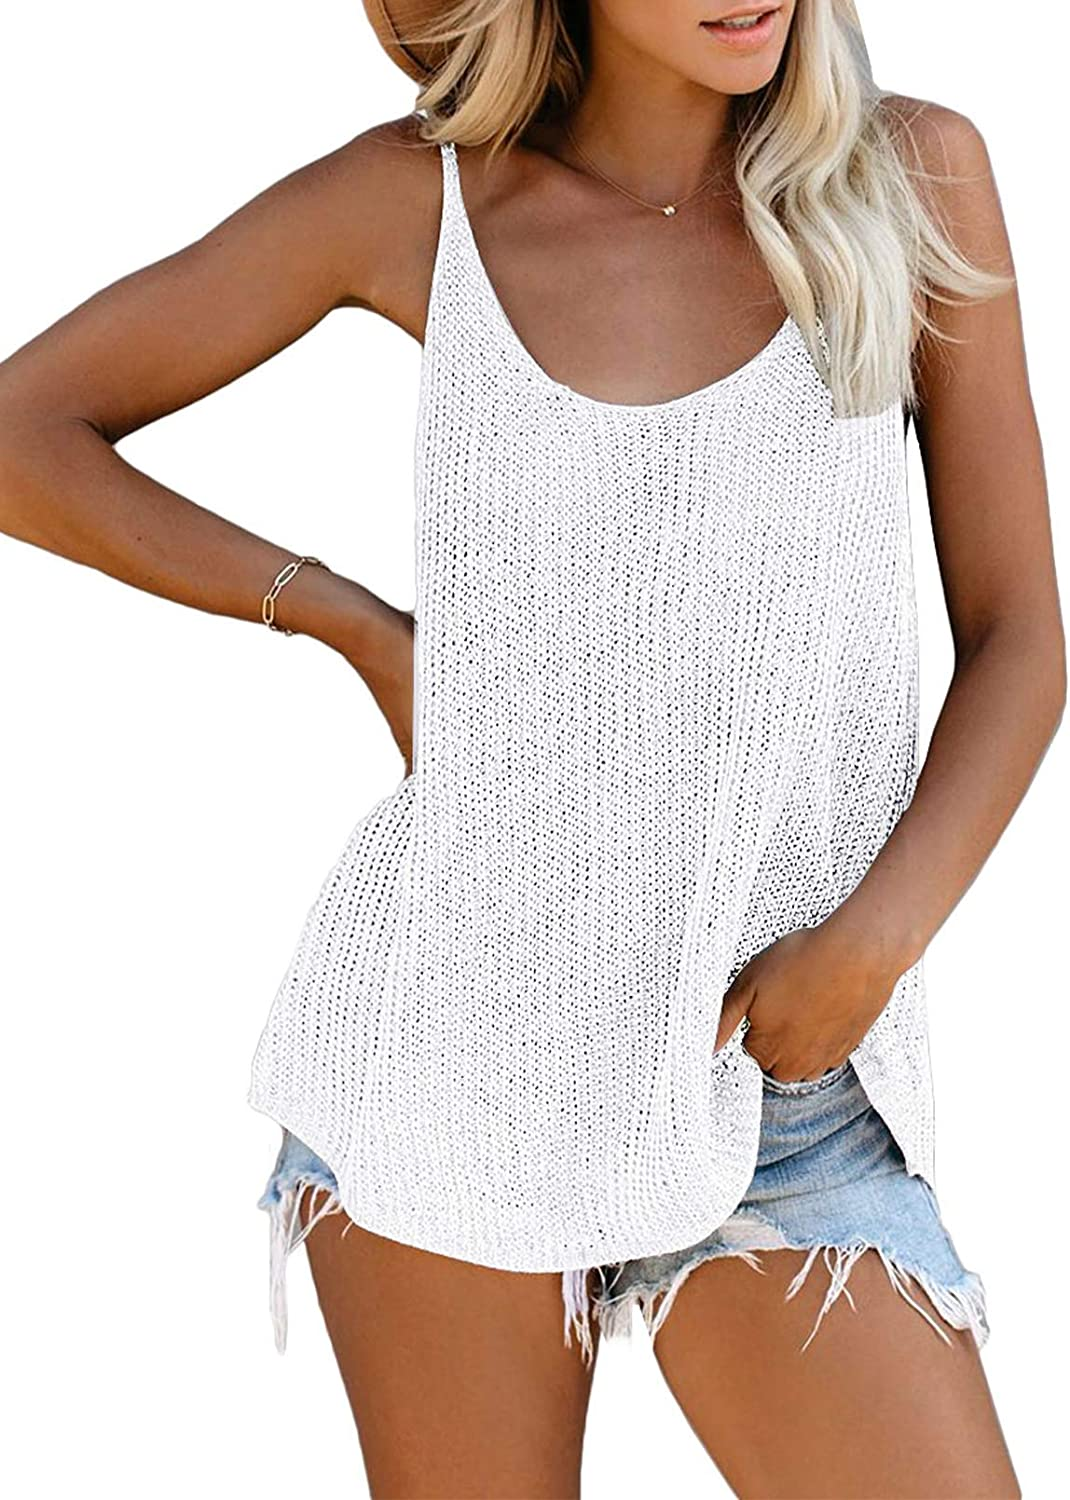 Zecilbo Womens Summer Loose Casual Sleeveless Shirts Scoop Neck Strappy Tank Tops Camis Blouses